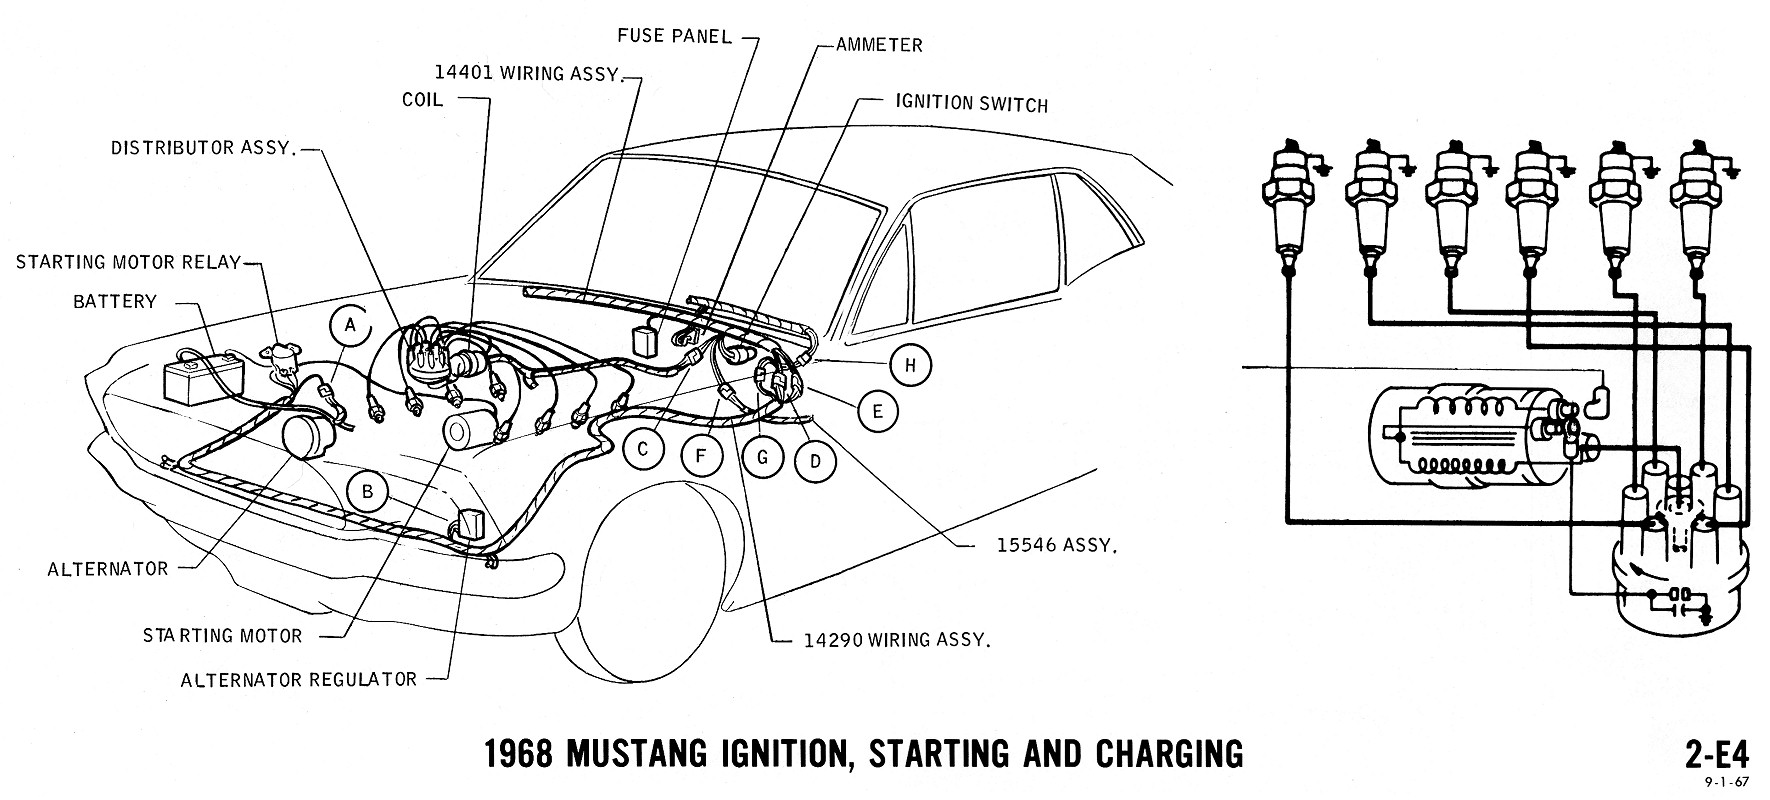 1968 mustang wiring diagram ignition starting charging 2 1968 mustang wiring diagrams and vacuum schematics average joe ford 390 engine wiring diagram at eliteediting.co